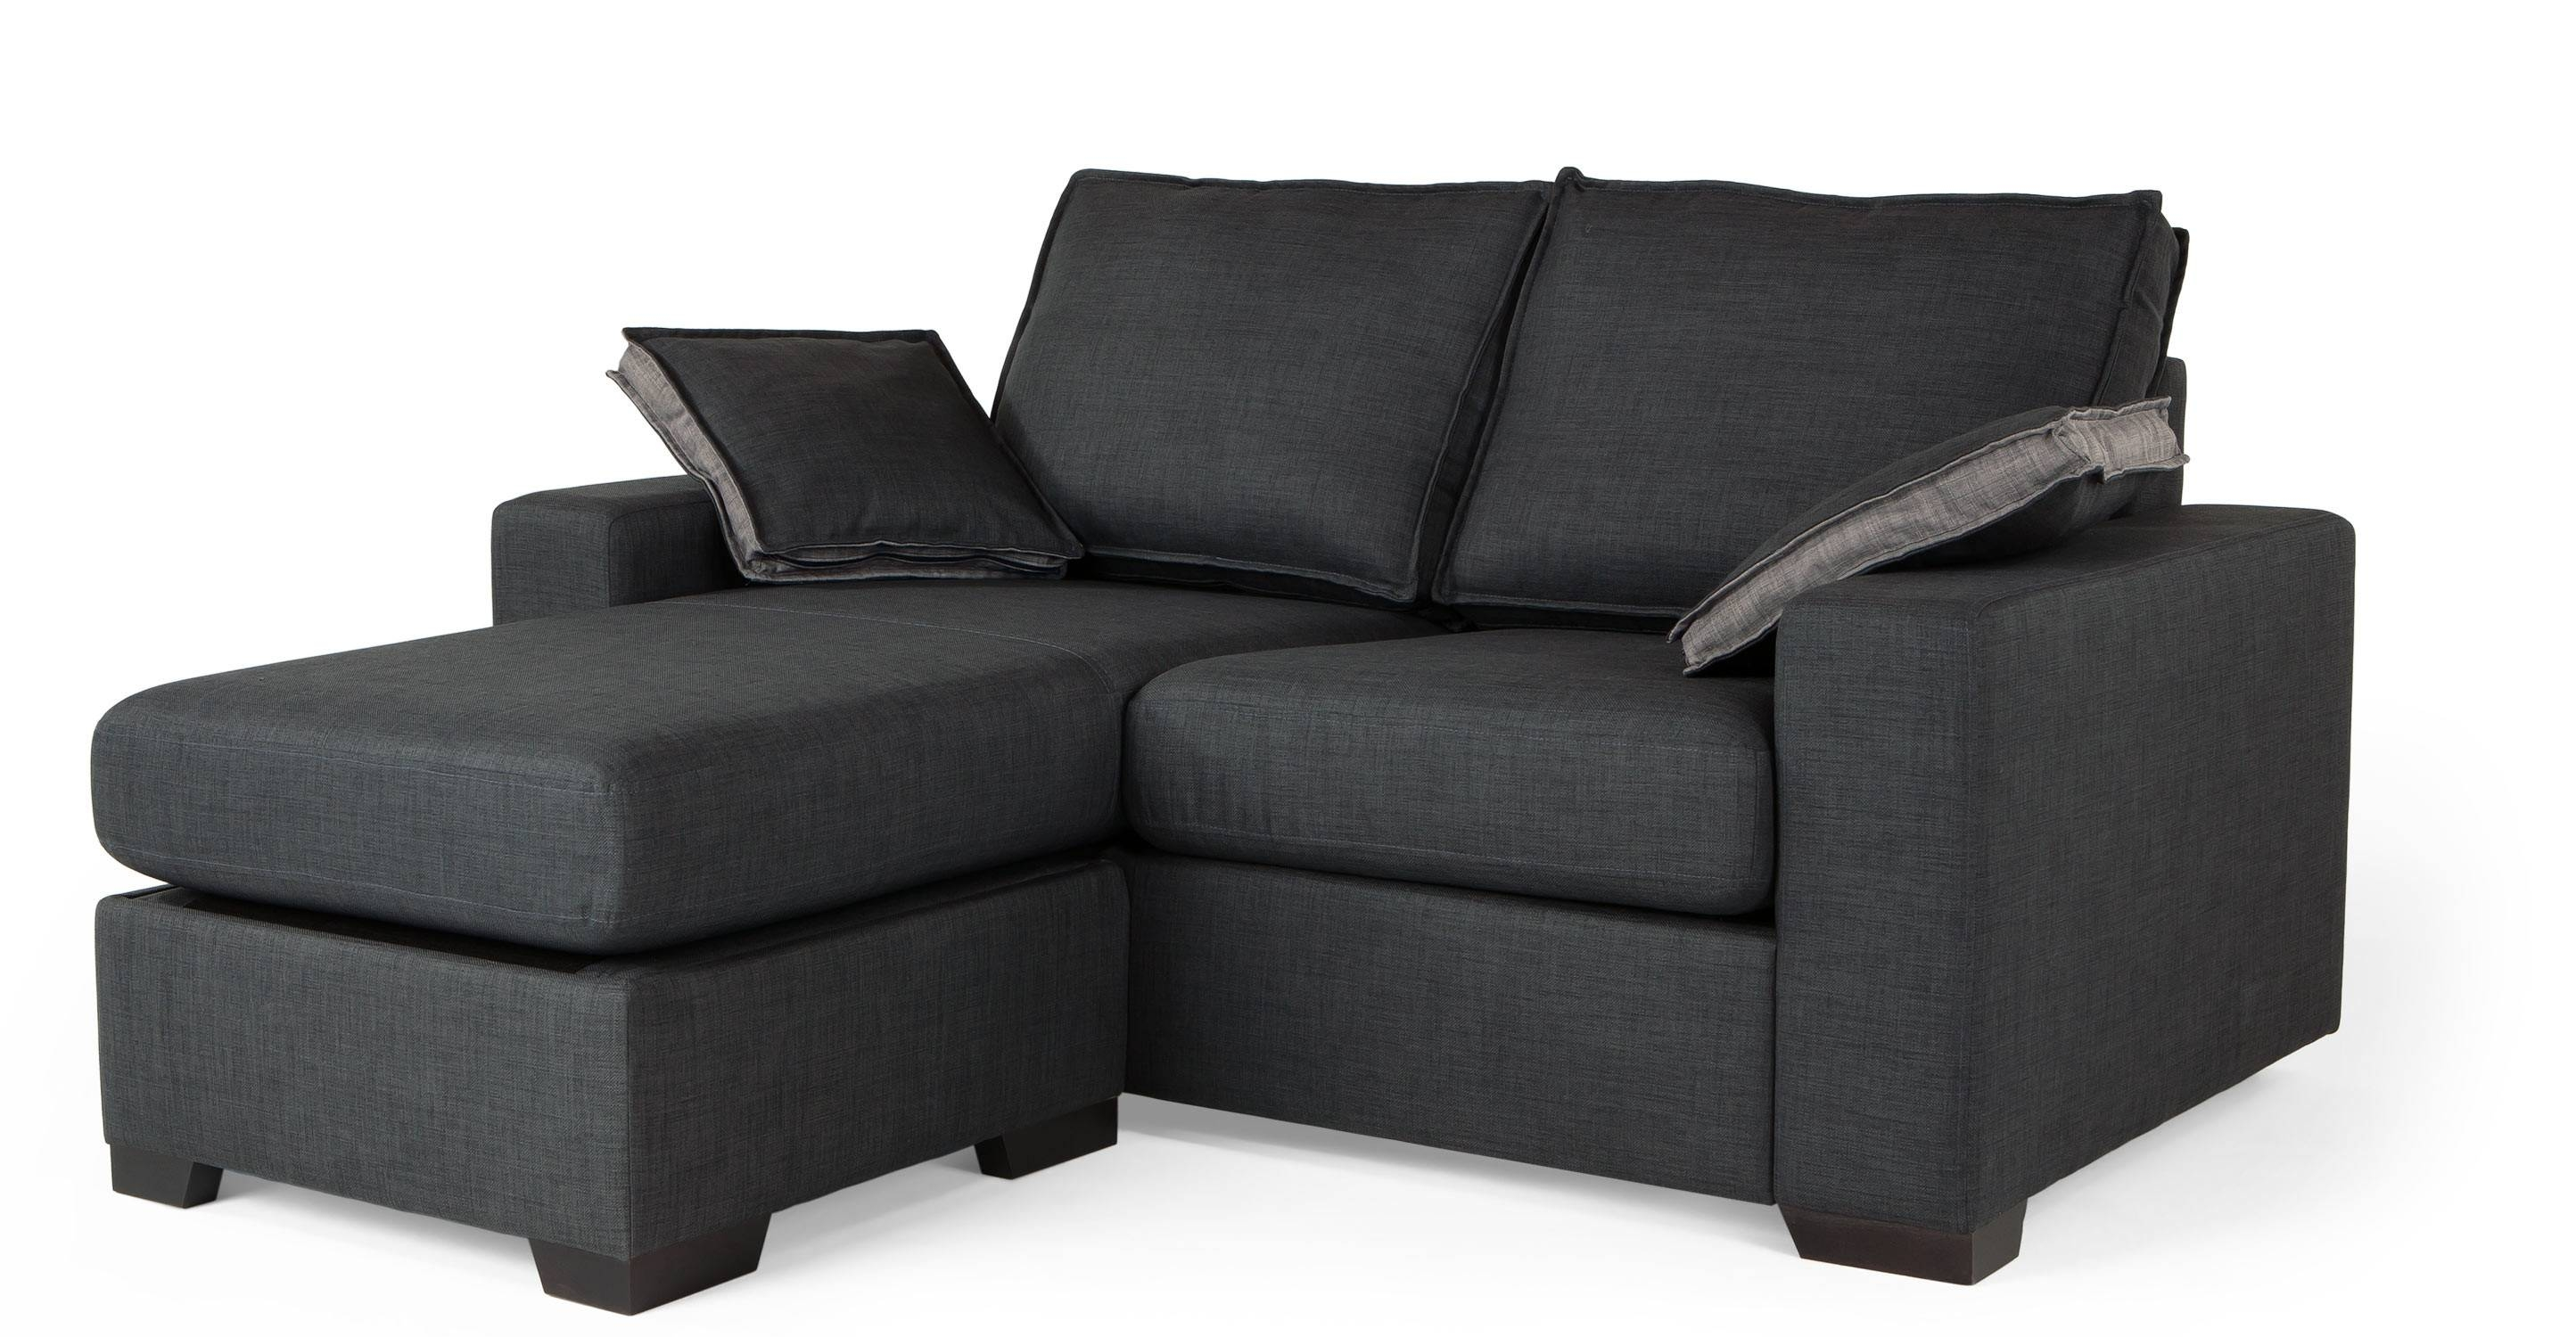 Sofas Center : Home Design Astonishing Small Sofa Beds Foracessace inside Small Scale Sofa Bed (Image 18 of 25)